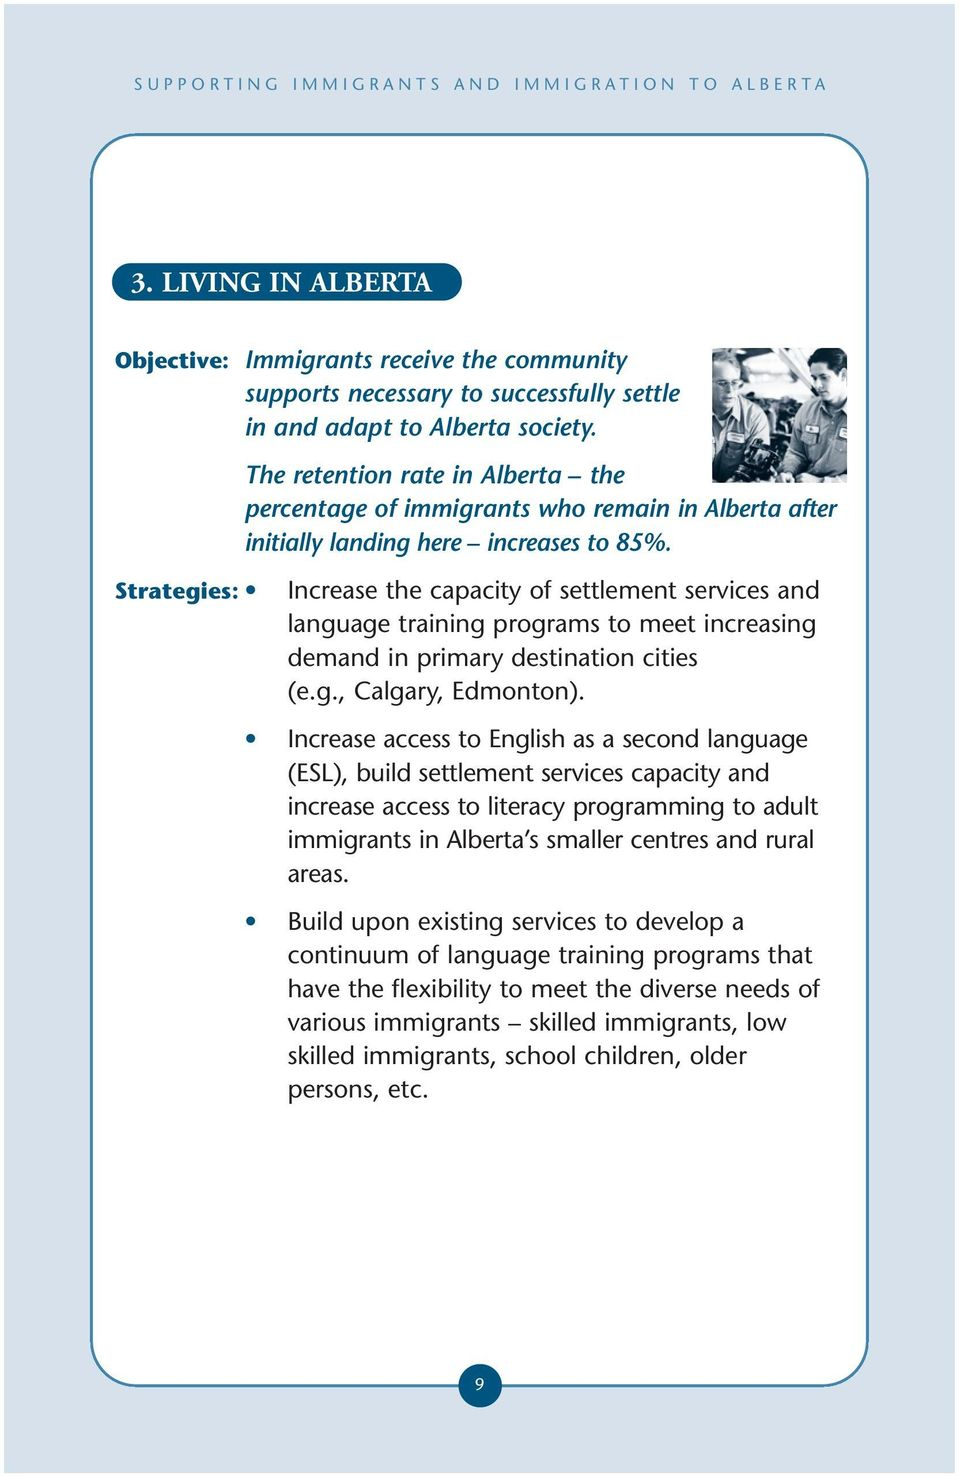 Strategies: Increase the capacity of settlement services and language training programs to meet increasing demand in primary destination cities (e.g., Calgary, Edmonton).